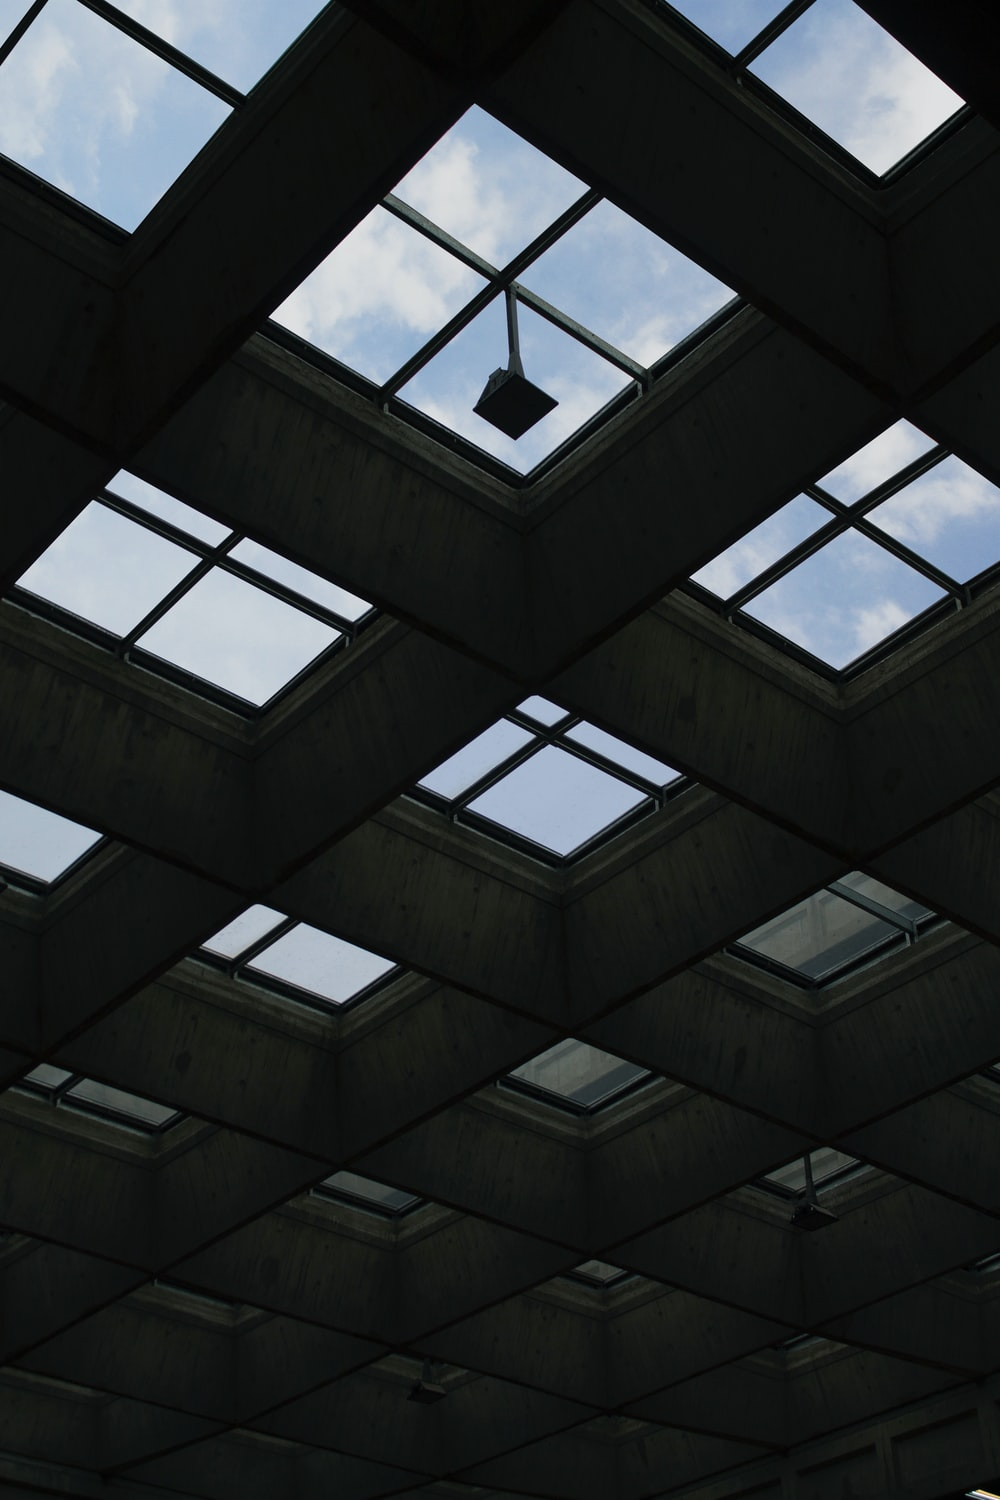 black and white glass ceiling